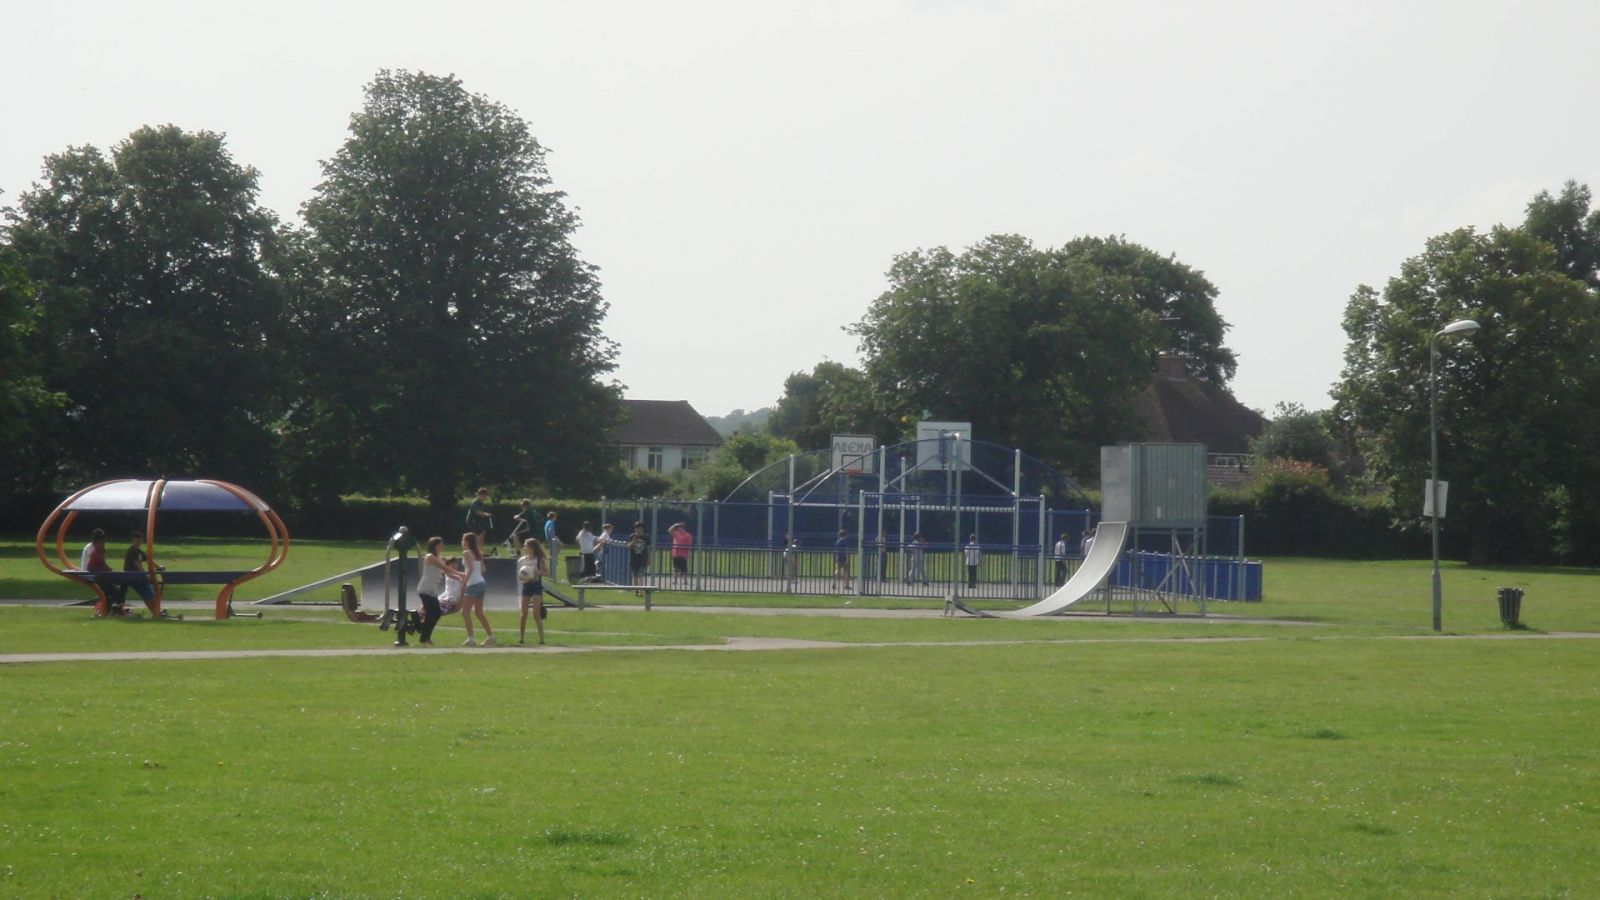 Photo of the basketball courts at Horley Recreation Ground